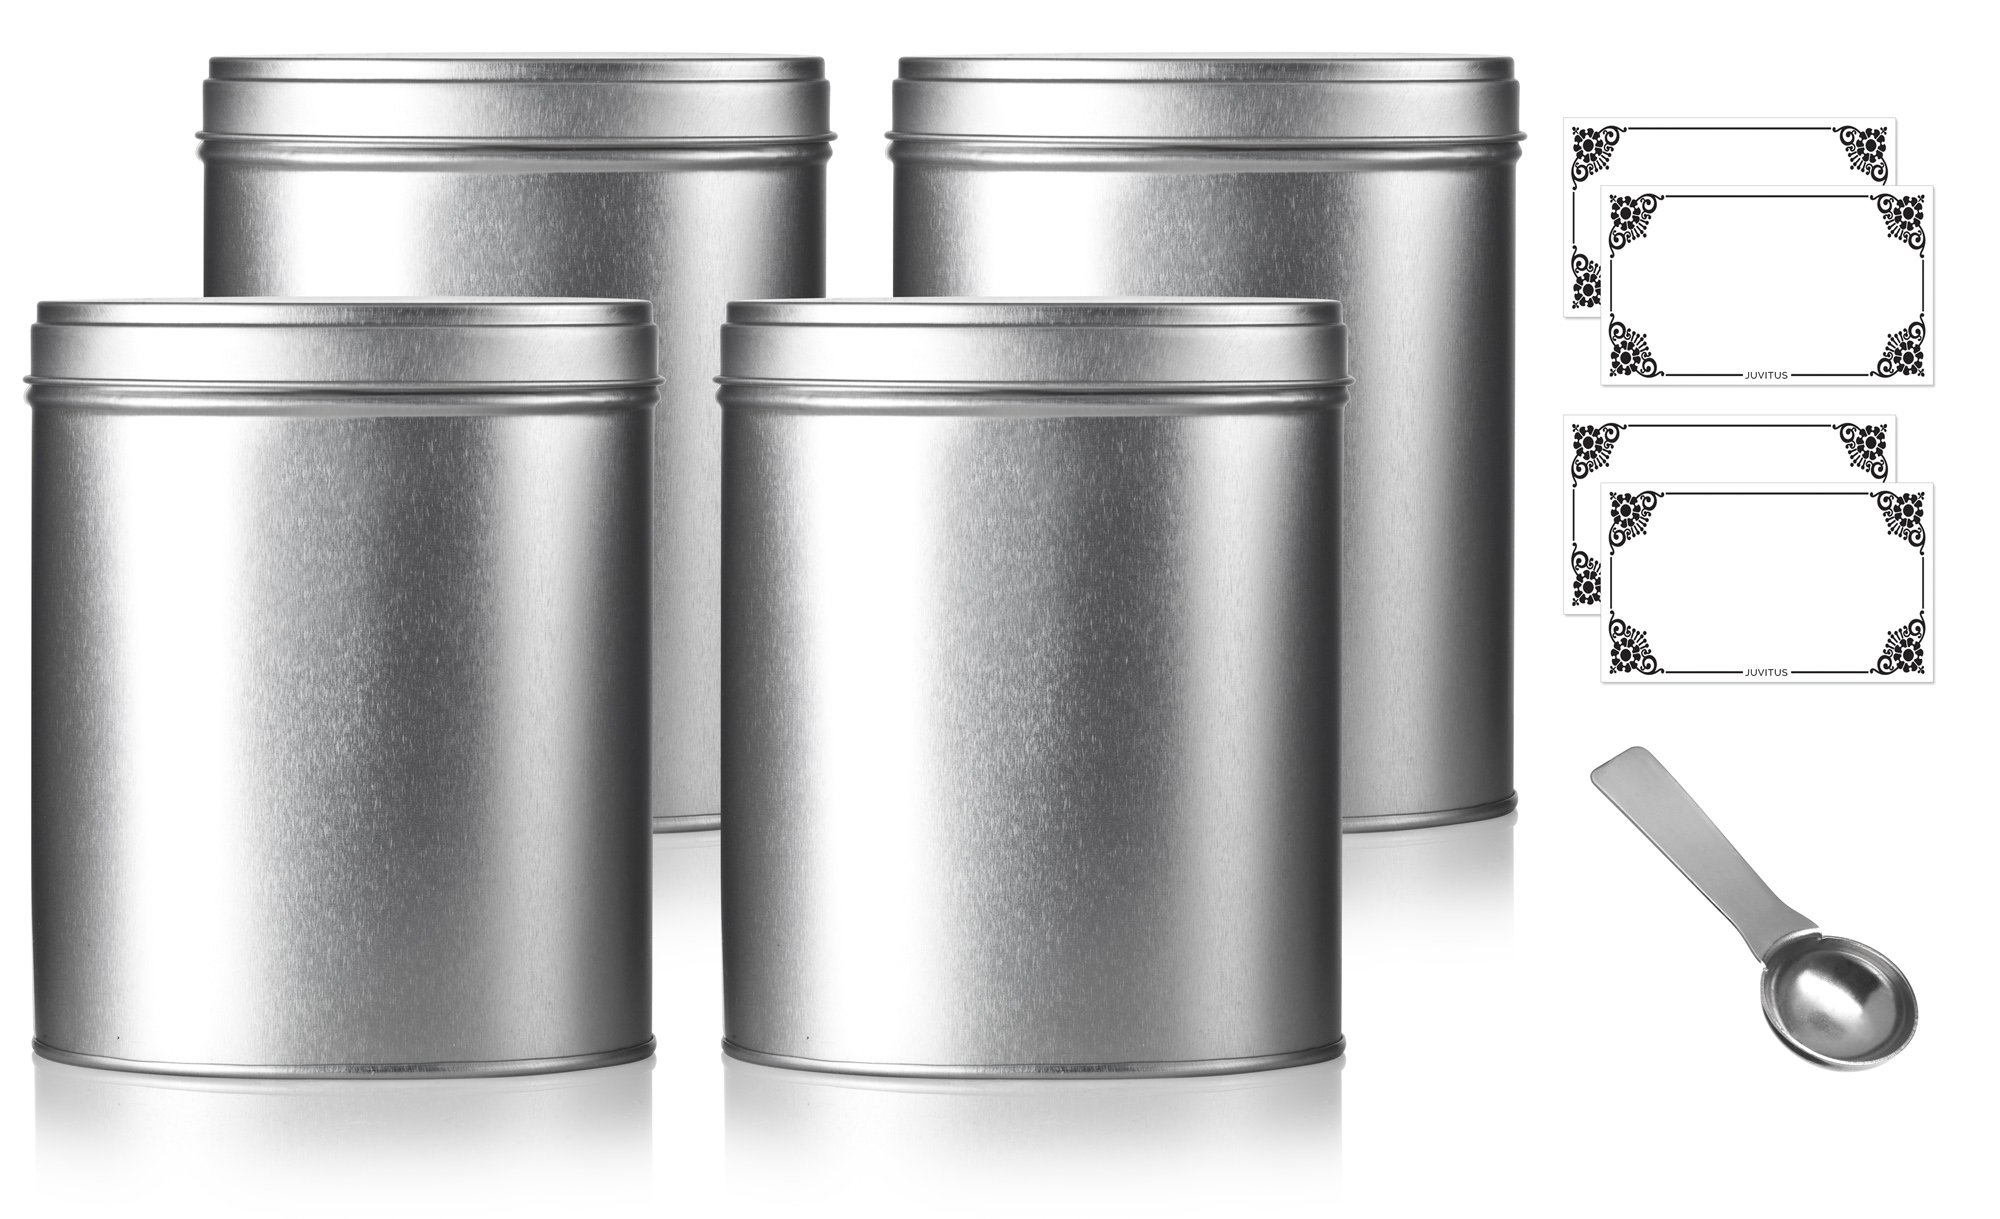 Oval Stackable Tea Tin Canister Containers 5.4'' (4 PACK) and Stainless Steel Metal Scoop Spoon + Labels, For Loose Leaf Tea, Coffee, Sugar Storage, Dried Herbs, Spices